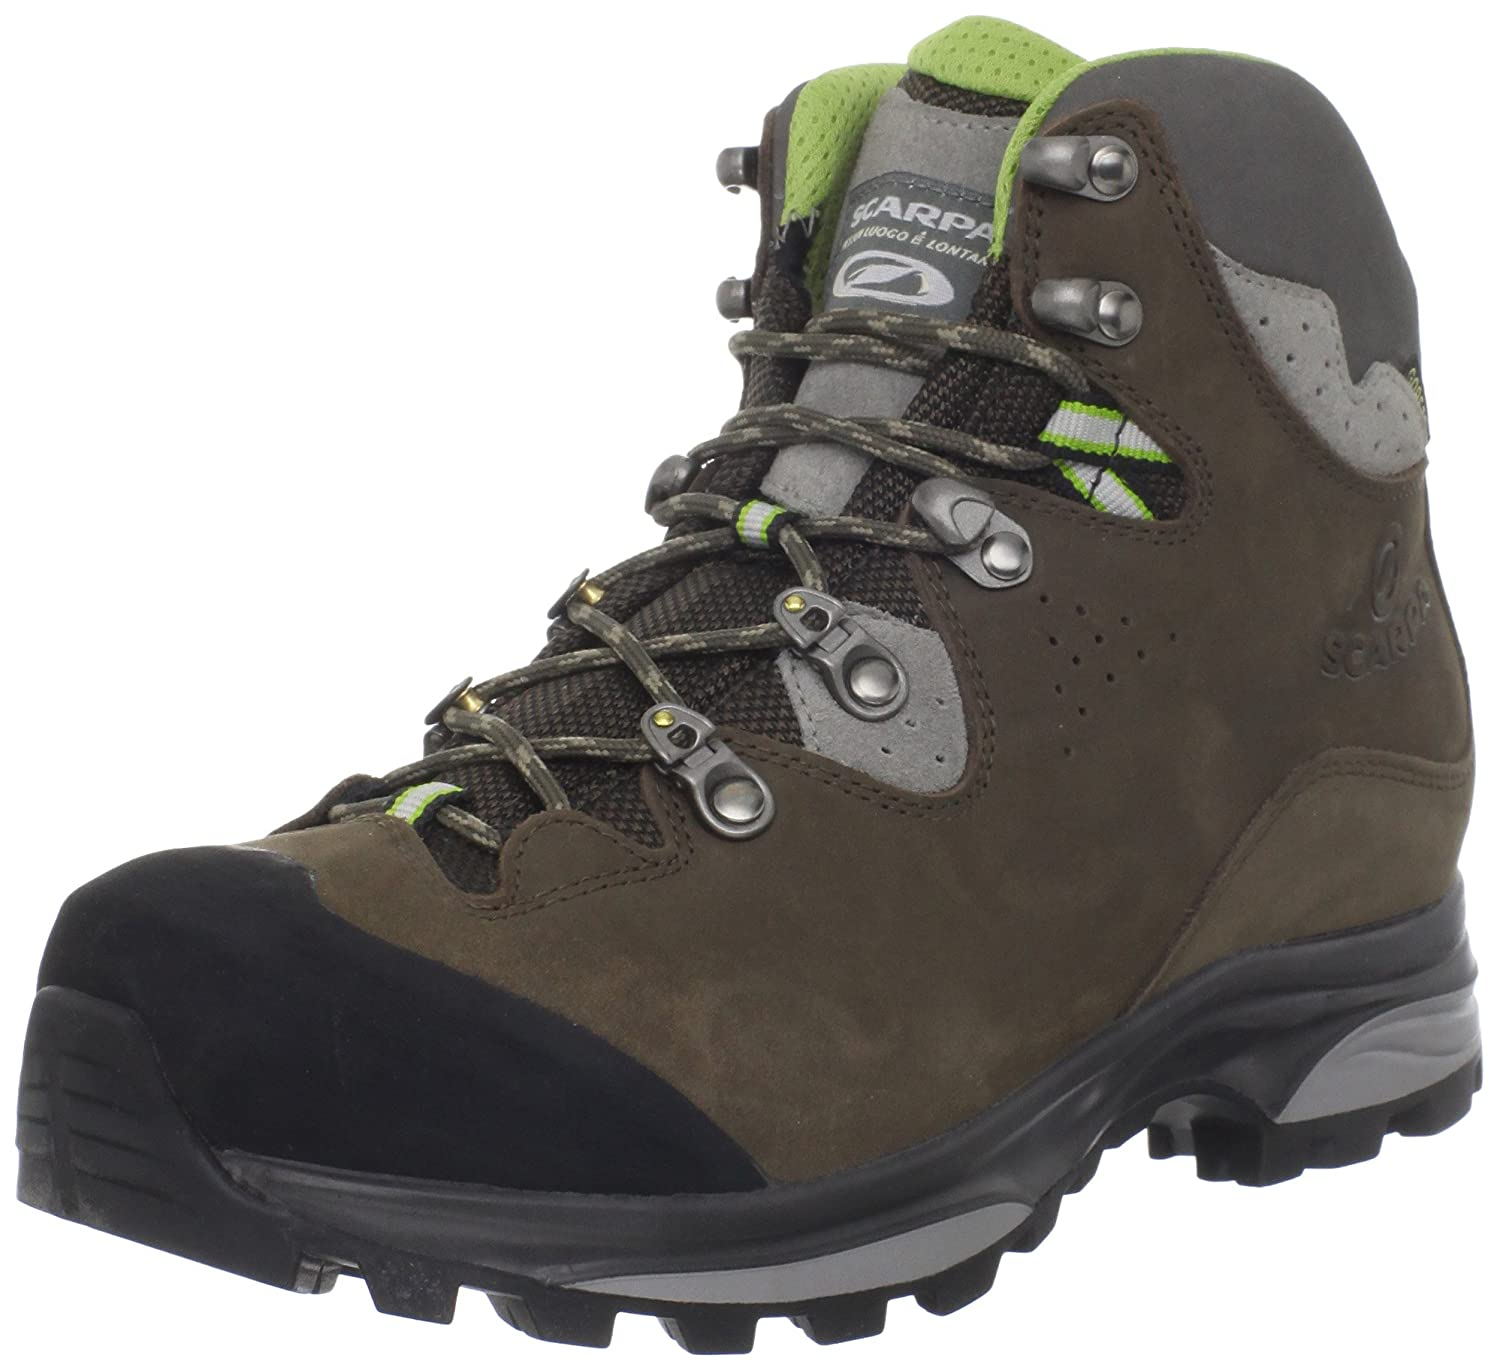 SCARPA Women's Hunza GTX Hiking Boot B005LCPUES 40 EU/8.5 M US|Dark Brown